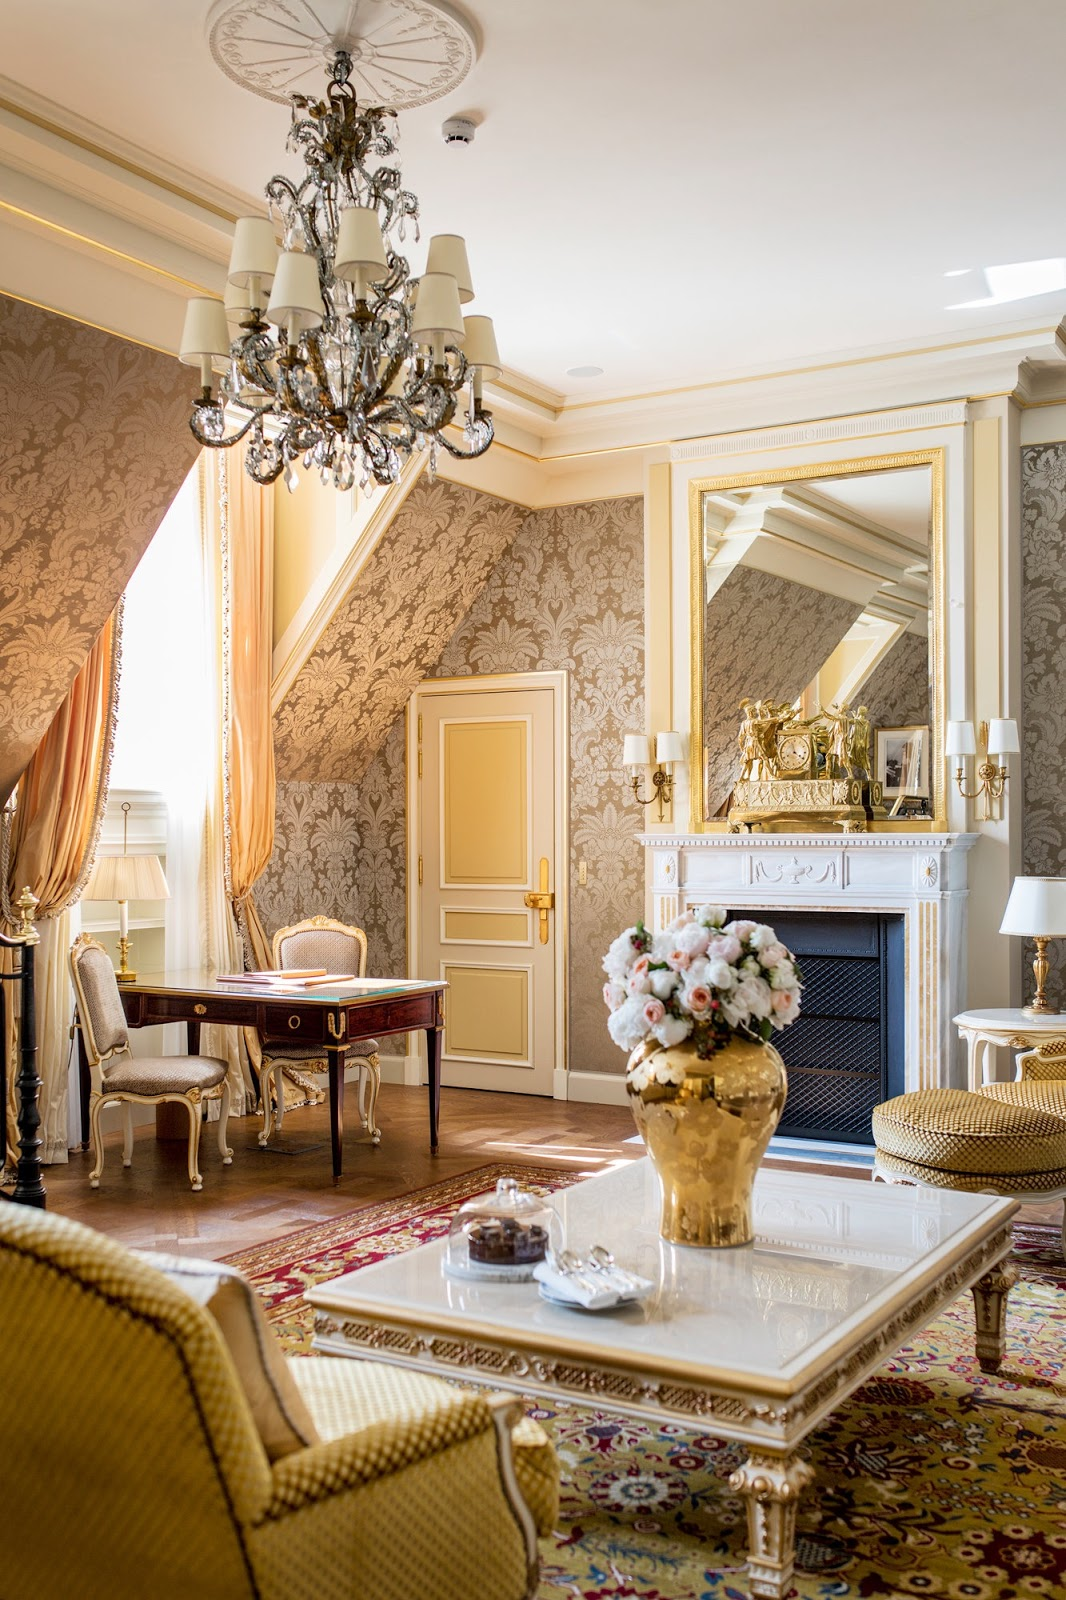 Glamorous spaces the ritz paris hotel on place vend me for Hotel chic decor